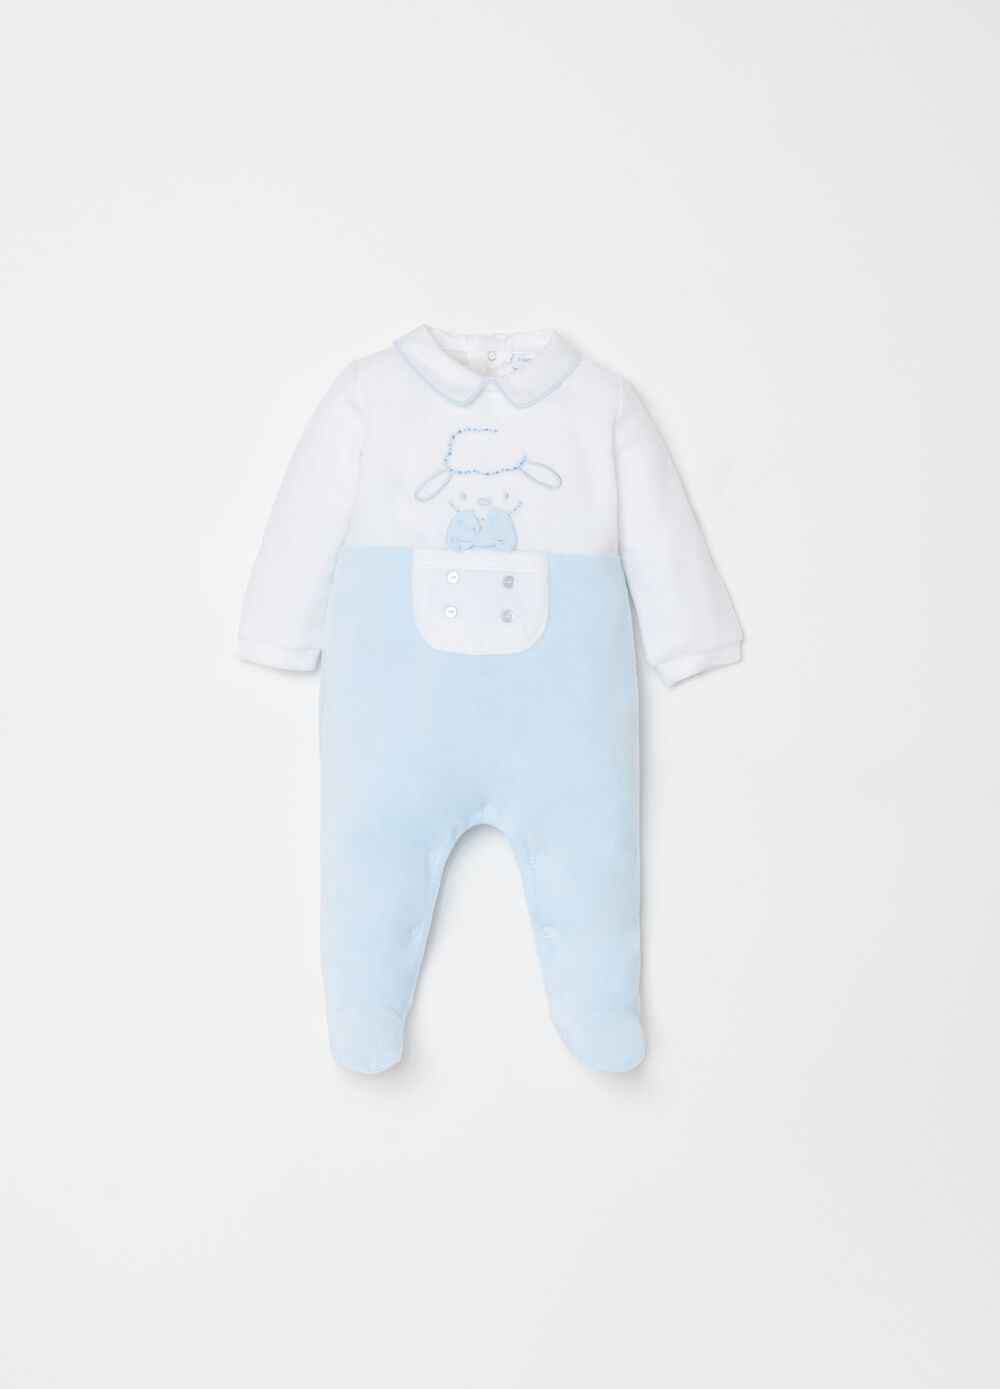 Onesie with feet and sheep embroidery